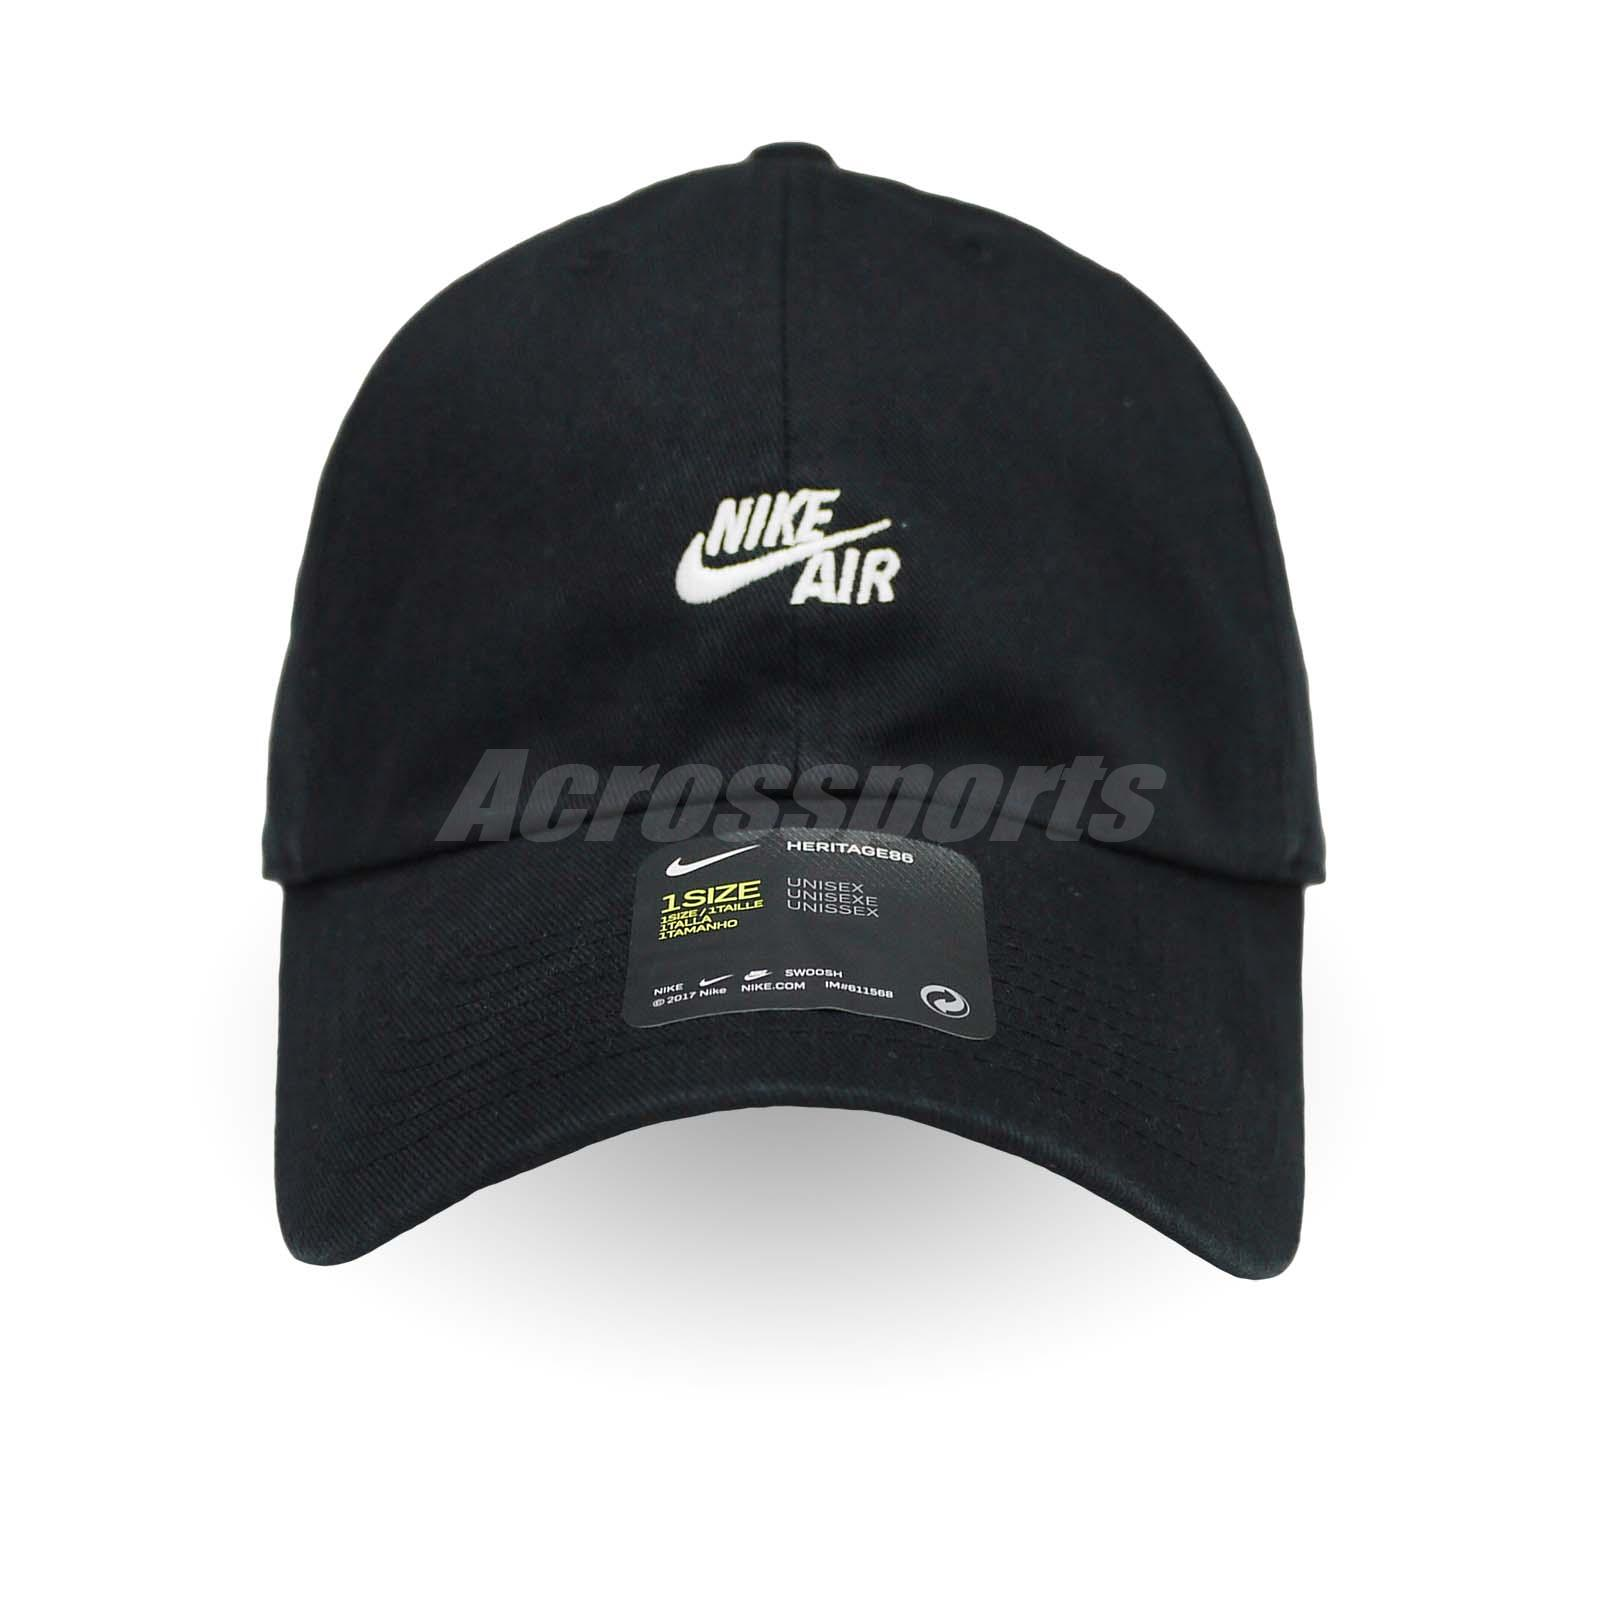 Nike Unisex Air Heritage 86 Cap Running Sports Gym Hat Black White ... 1b9083e44ea